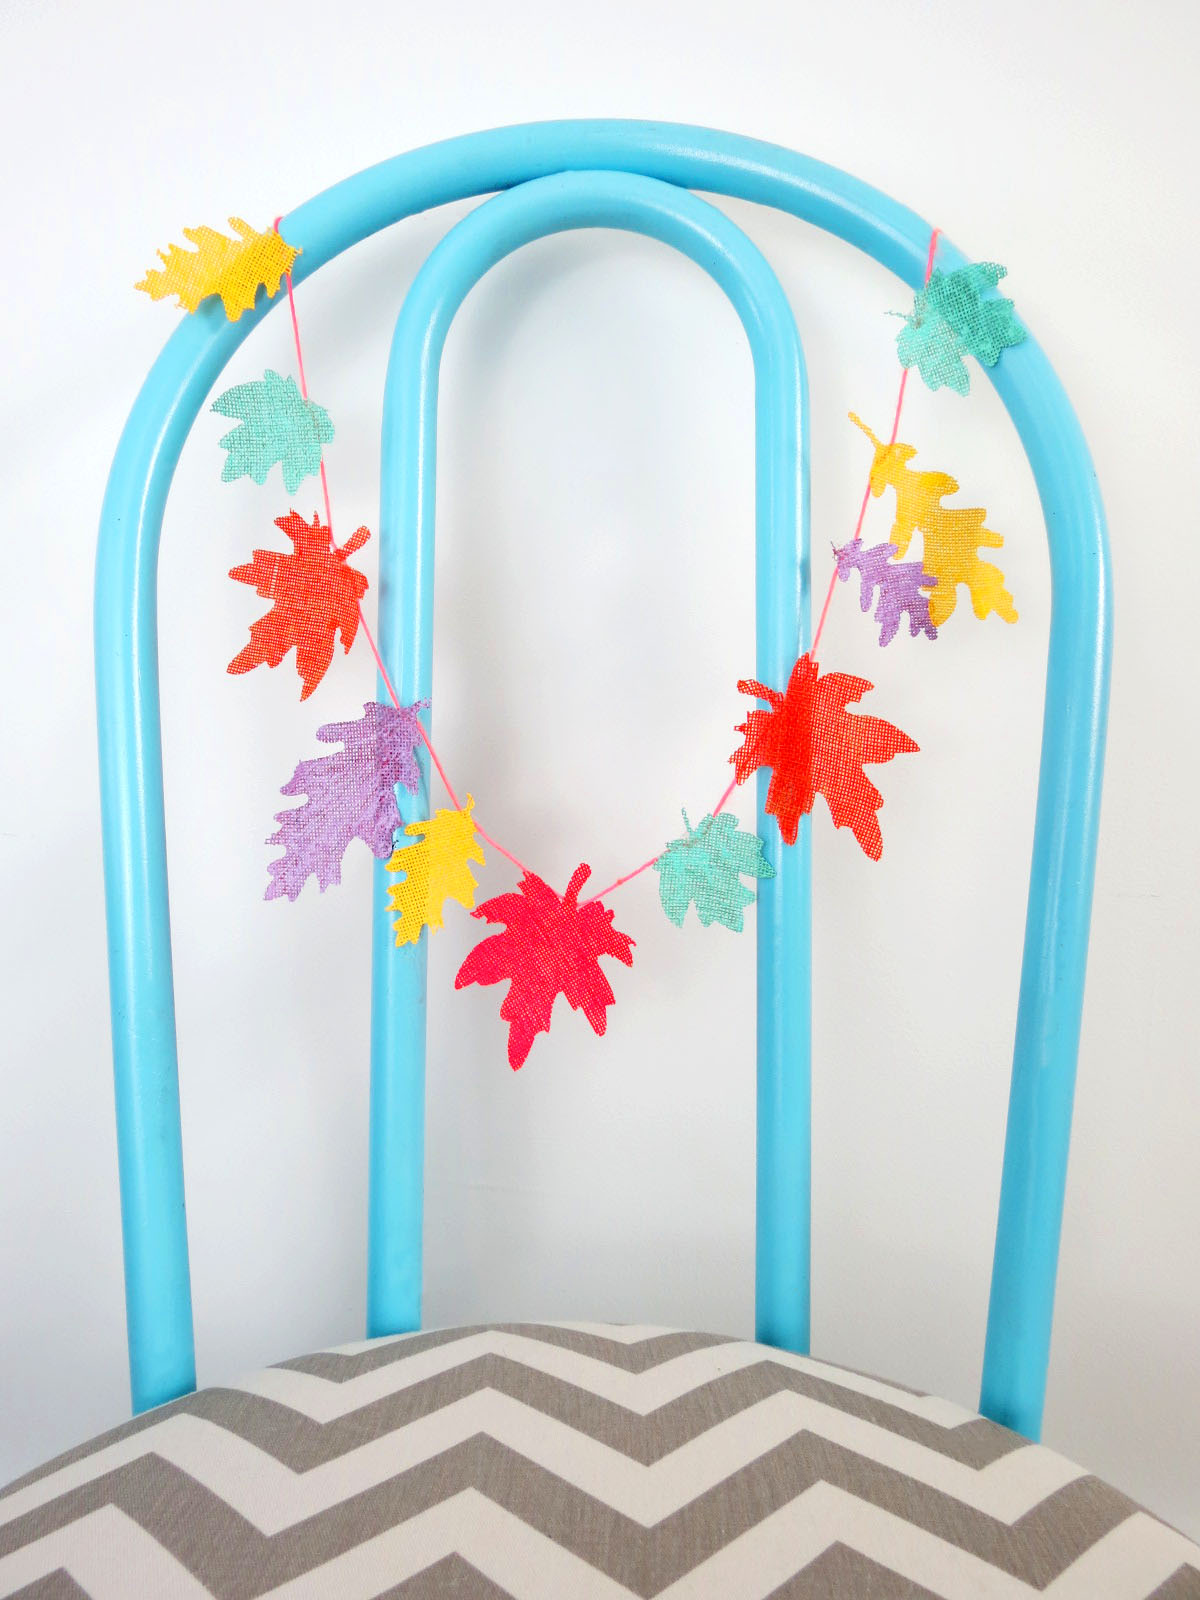 Dress up your Thanksgiving tablescape with this DIY Colorful Leaf Garland! These painted leaves will add a burst of color and are perfect for the kids' table! #thanksgiving #kidstable #colorfulthanksgiving